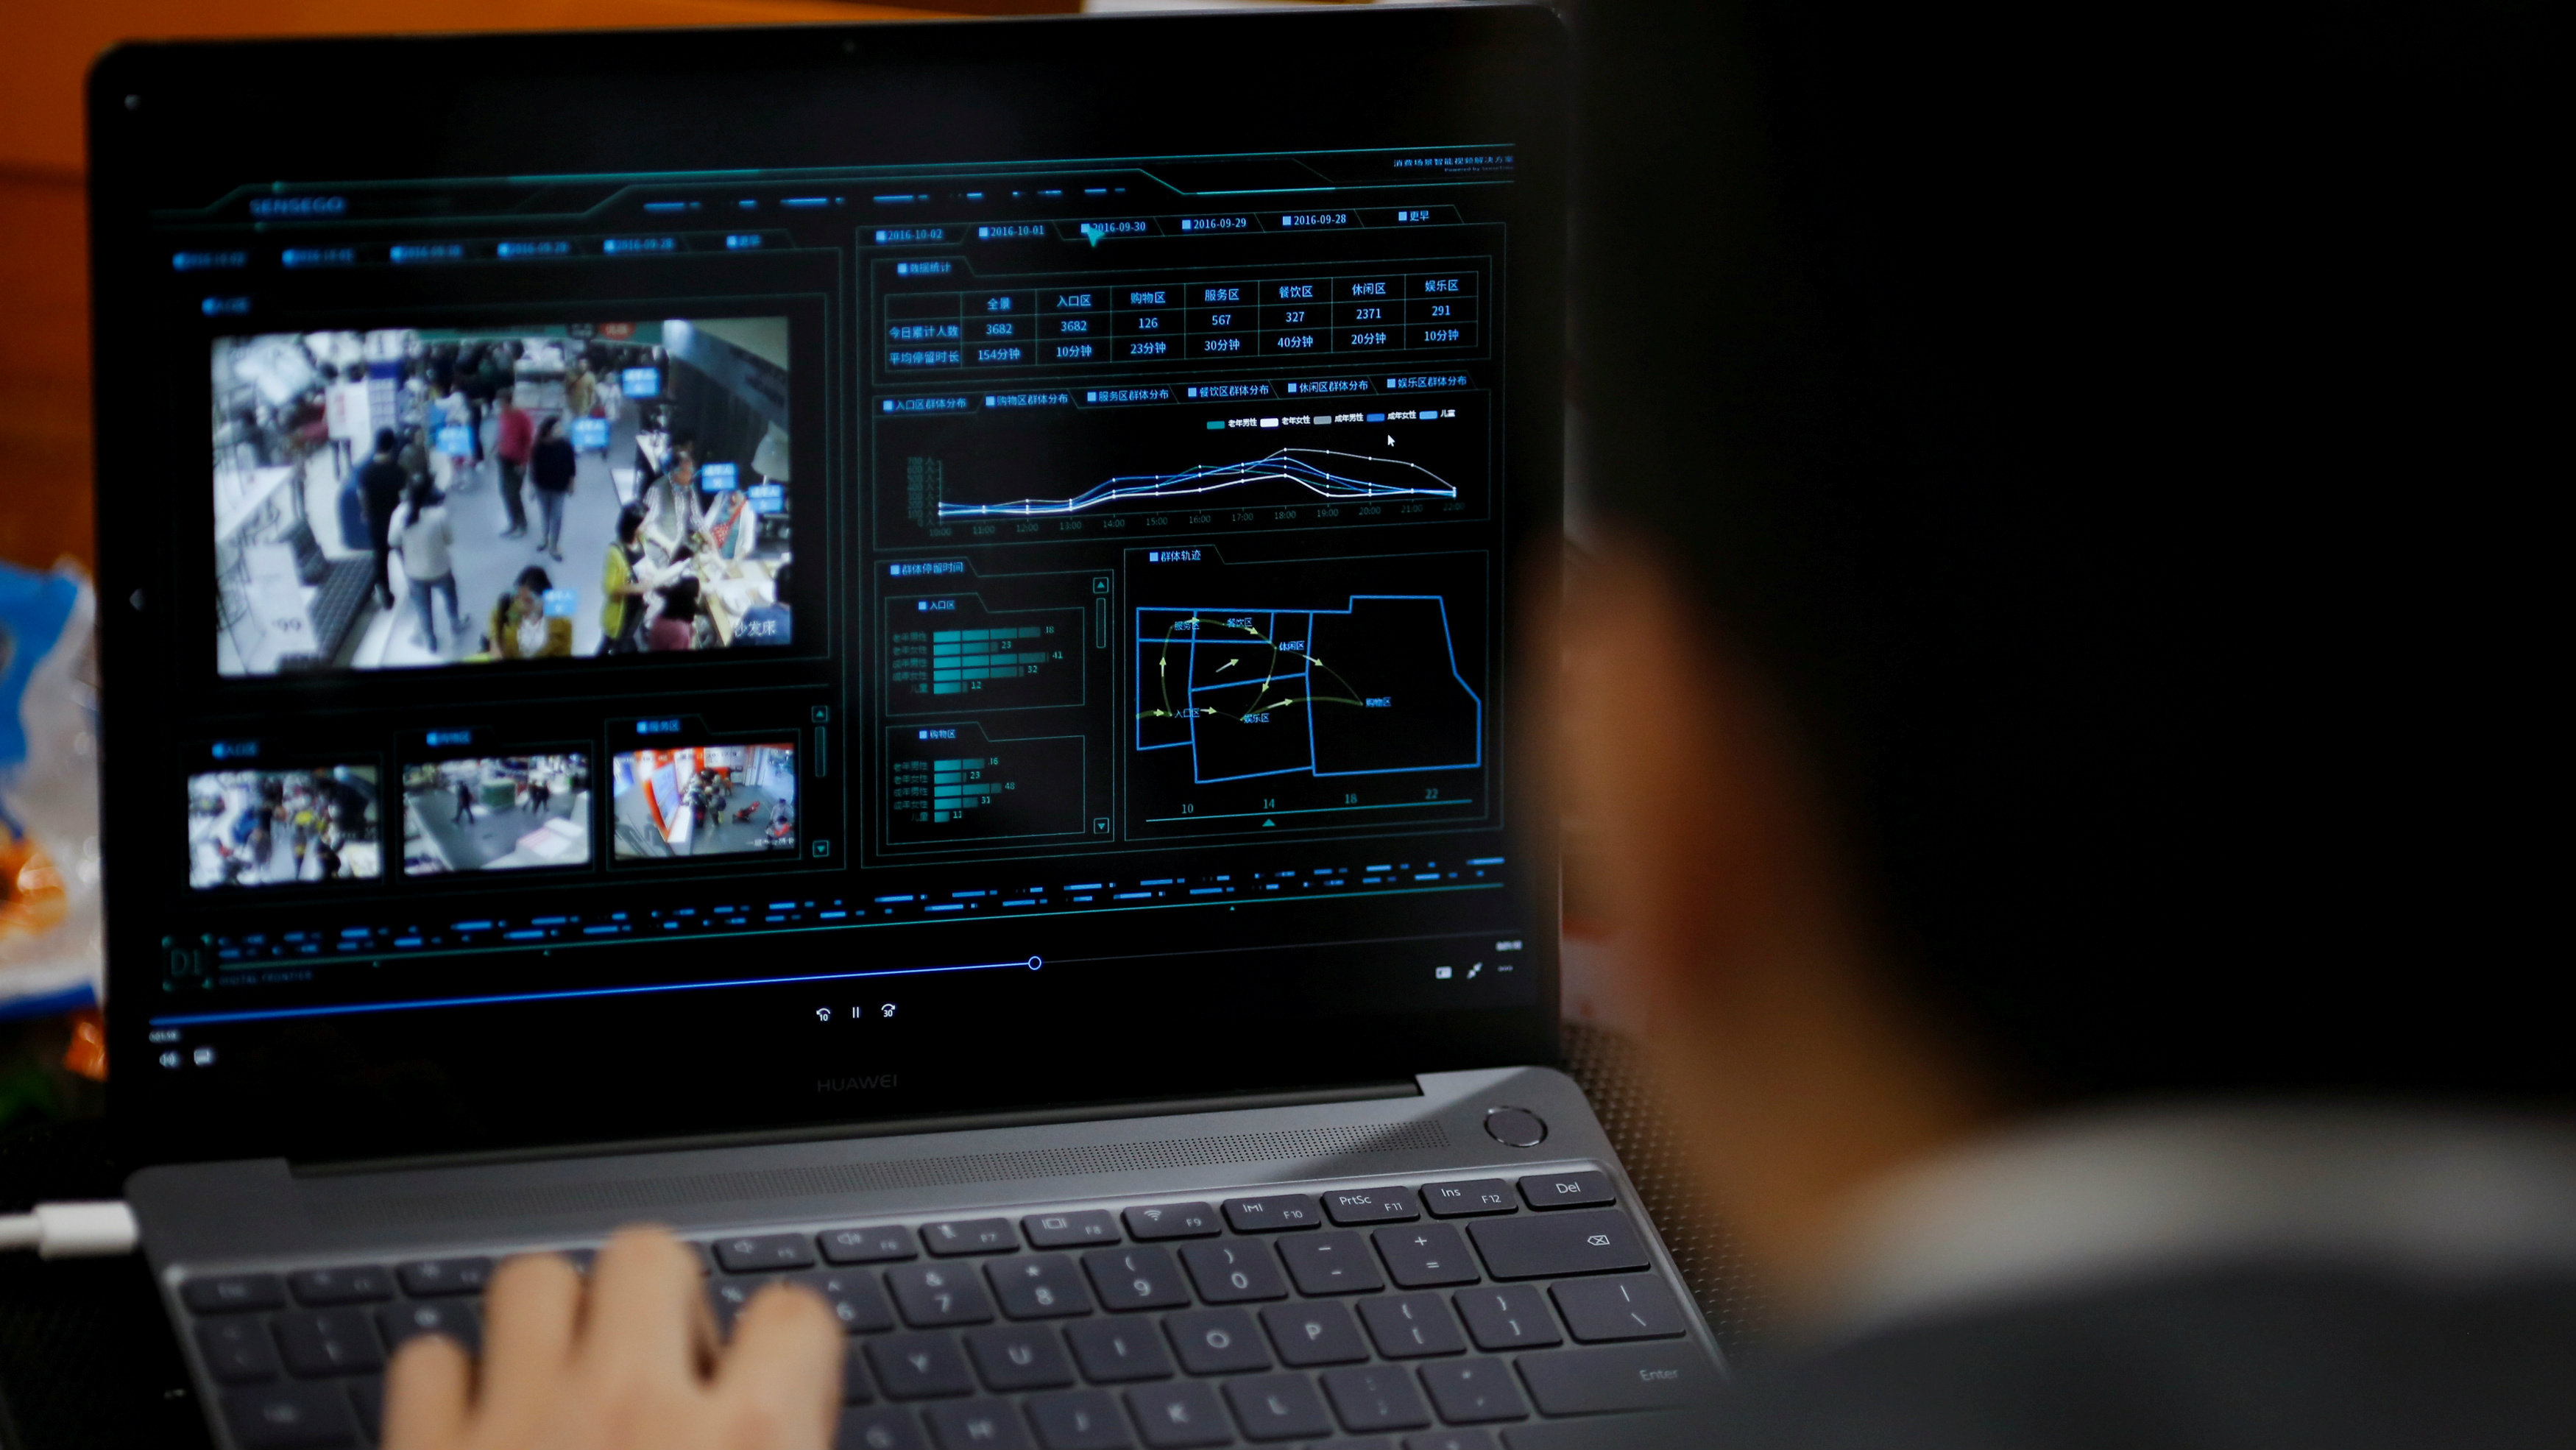 SenseTime Co-Founder Xu Chiheng demonstrates surveillance software of his company on a laptop at the SenseTime office in Beijing, China